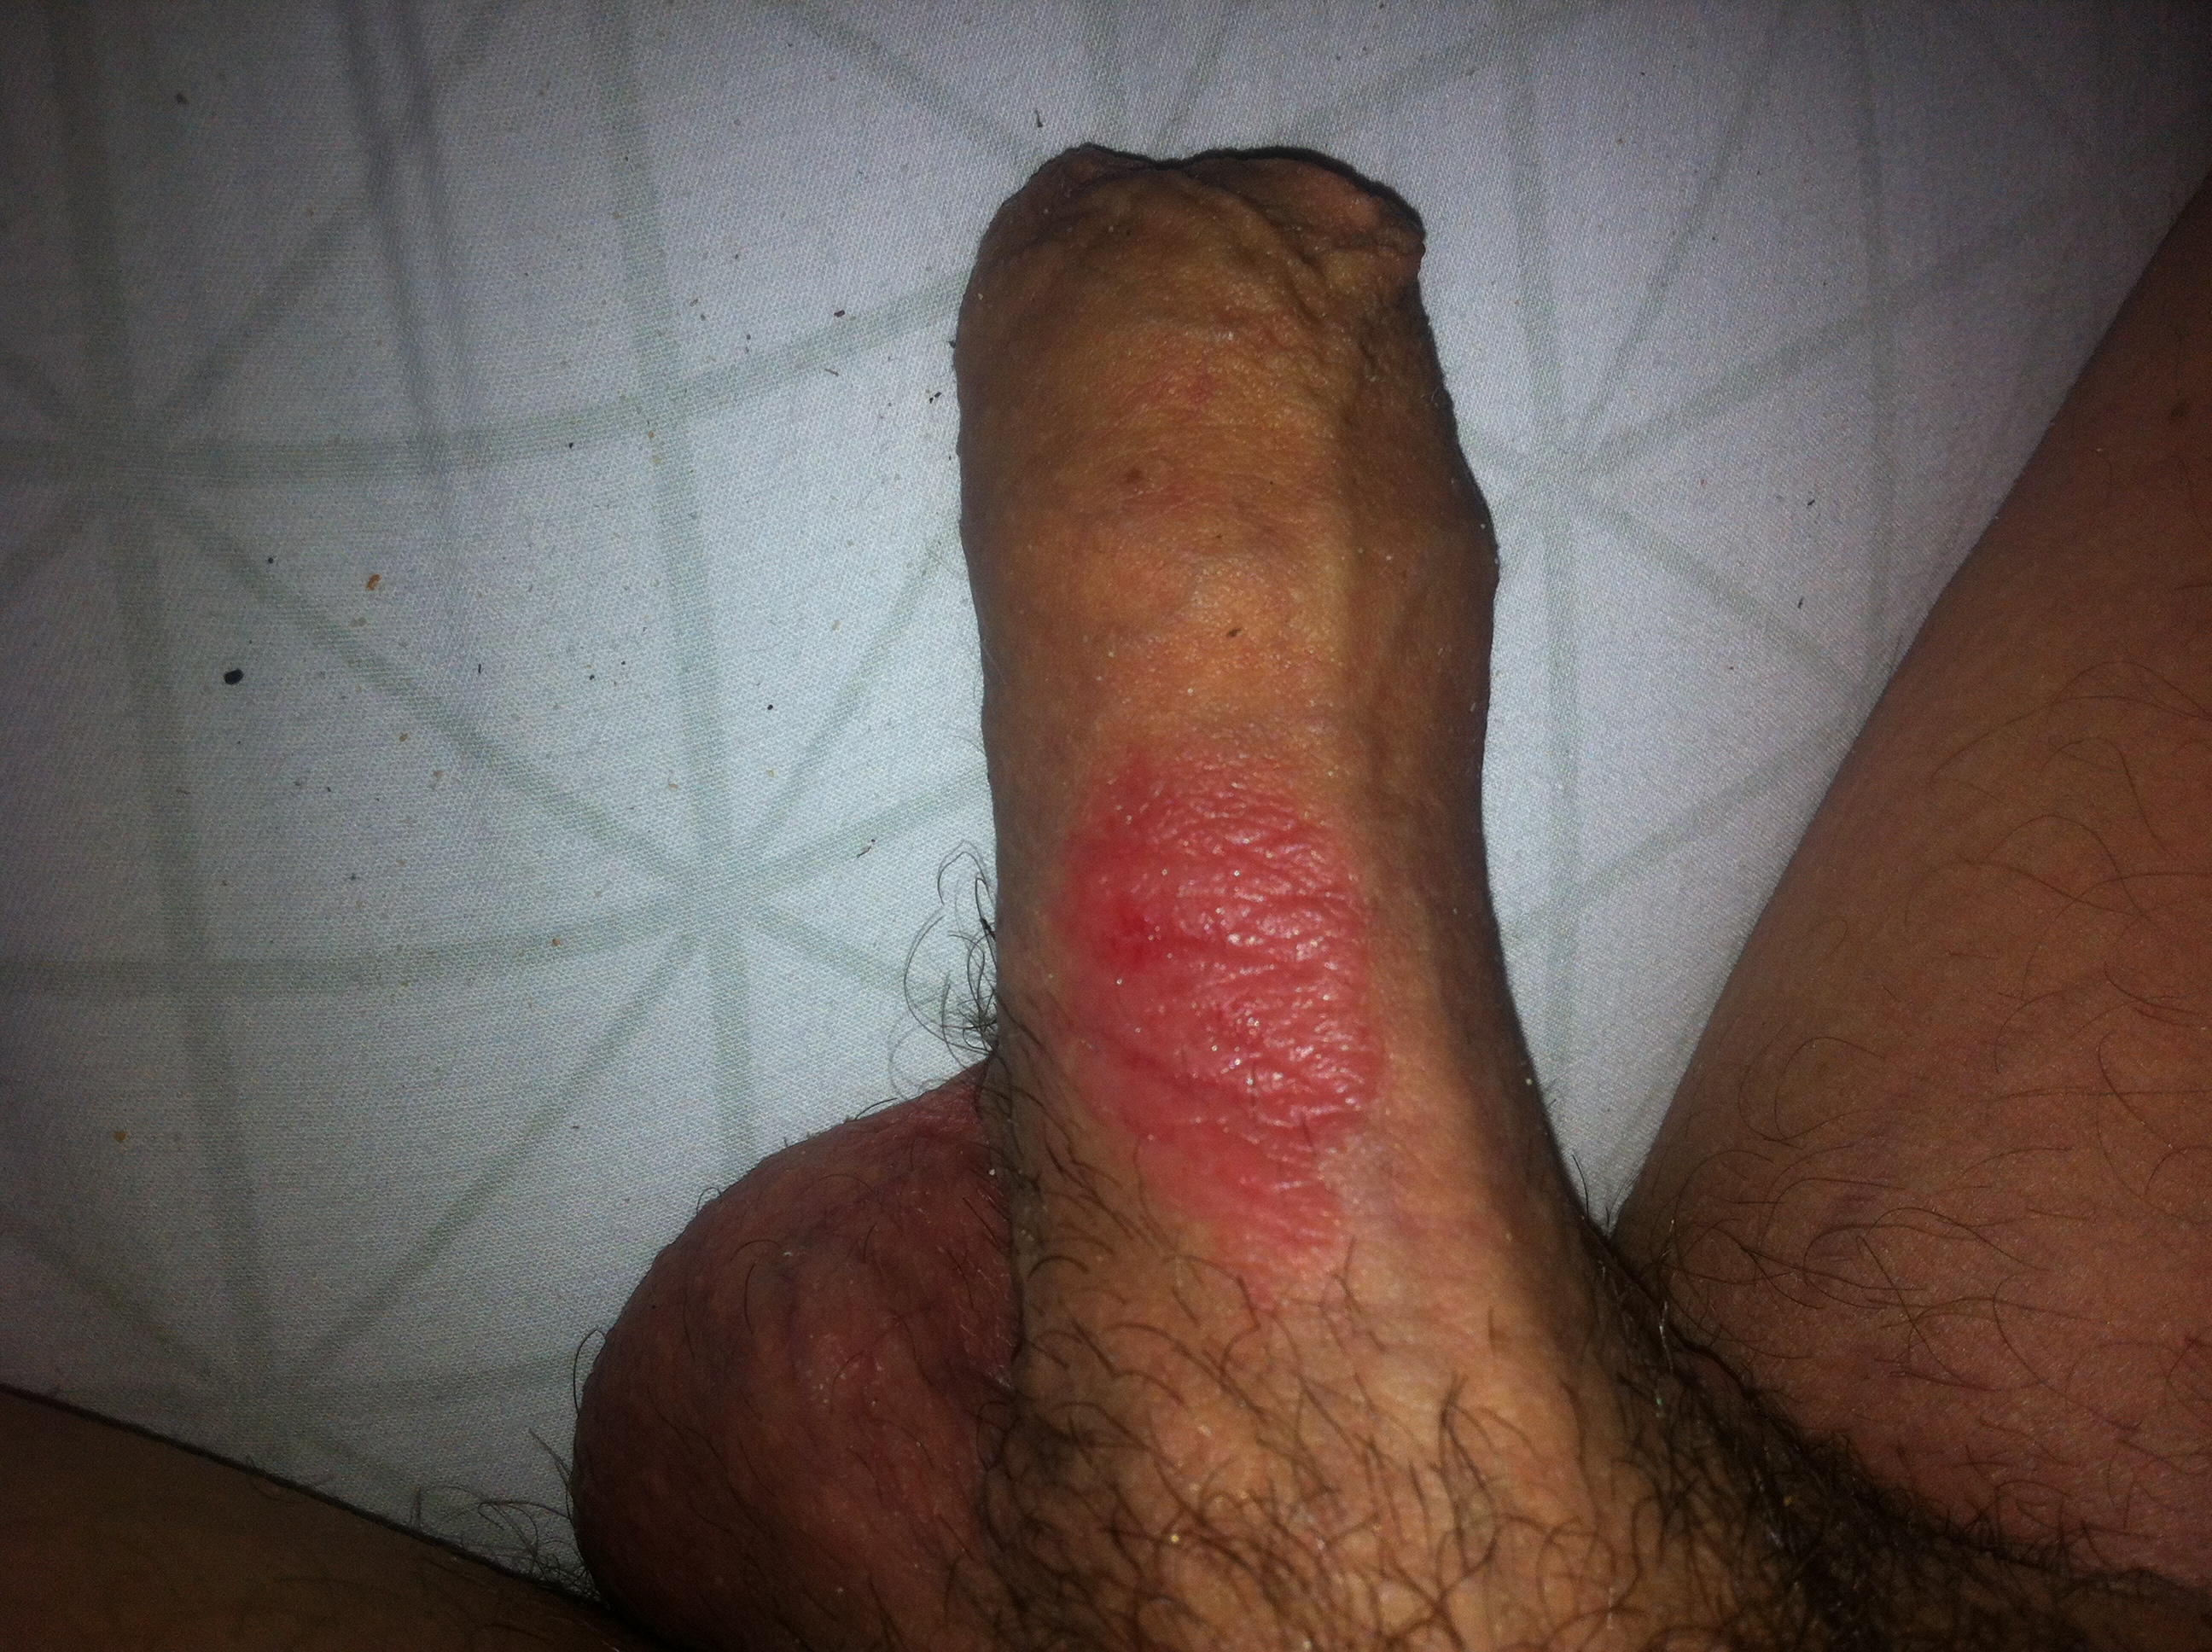 penis rash after sex